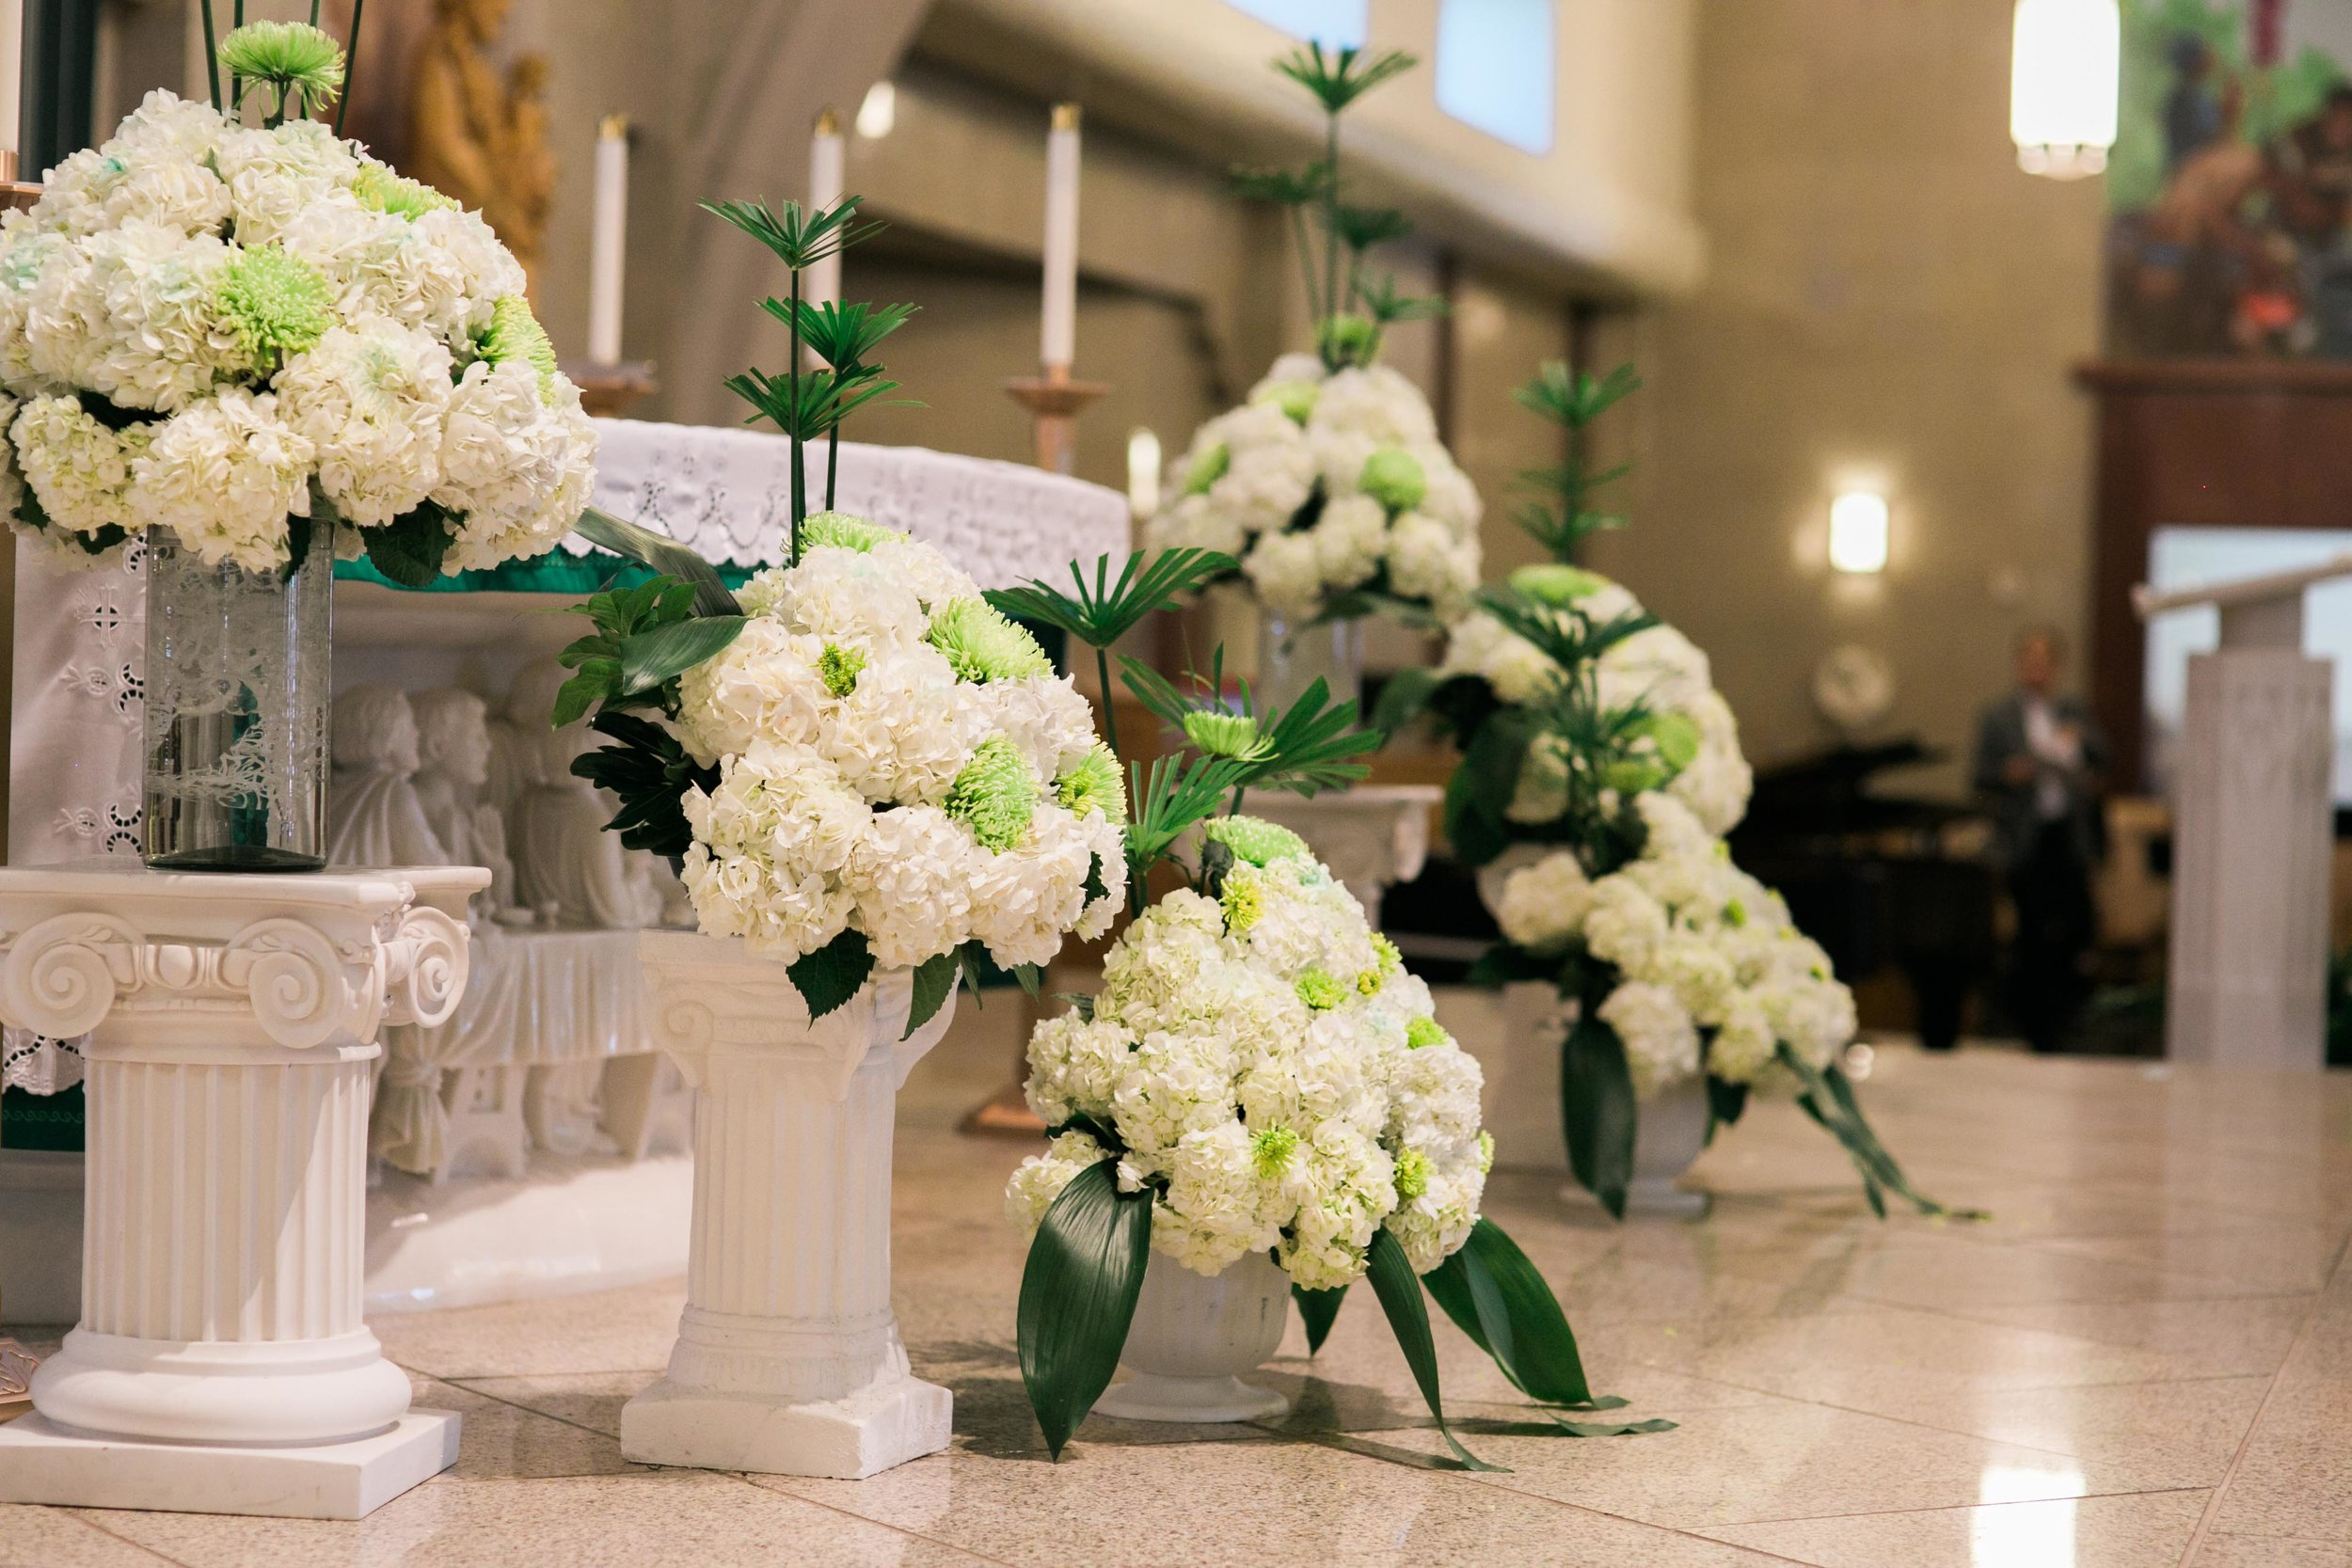 Beautiful flower decoration at the wedding.